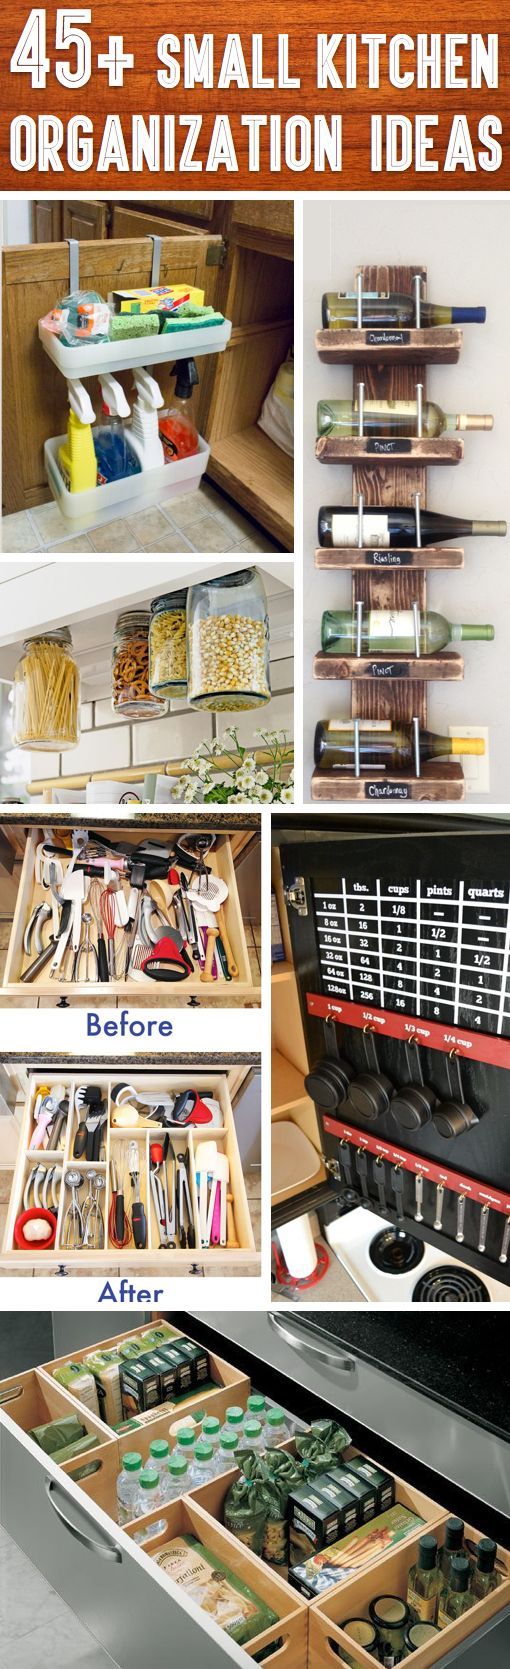 15 Little Clever Ideas To Improve Your Kitchen 9  Diy Storage Glamorous Kitchen Organization Ideas Inspiration Design